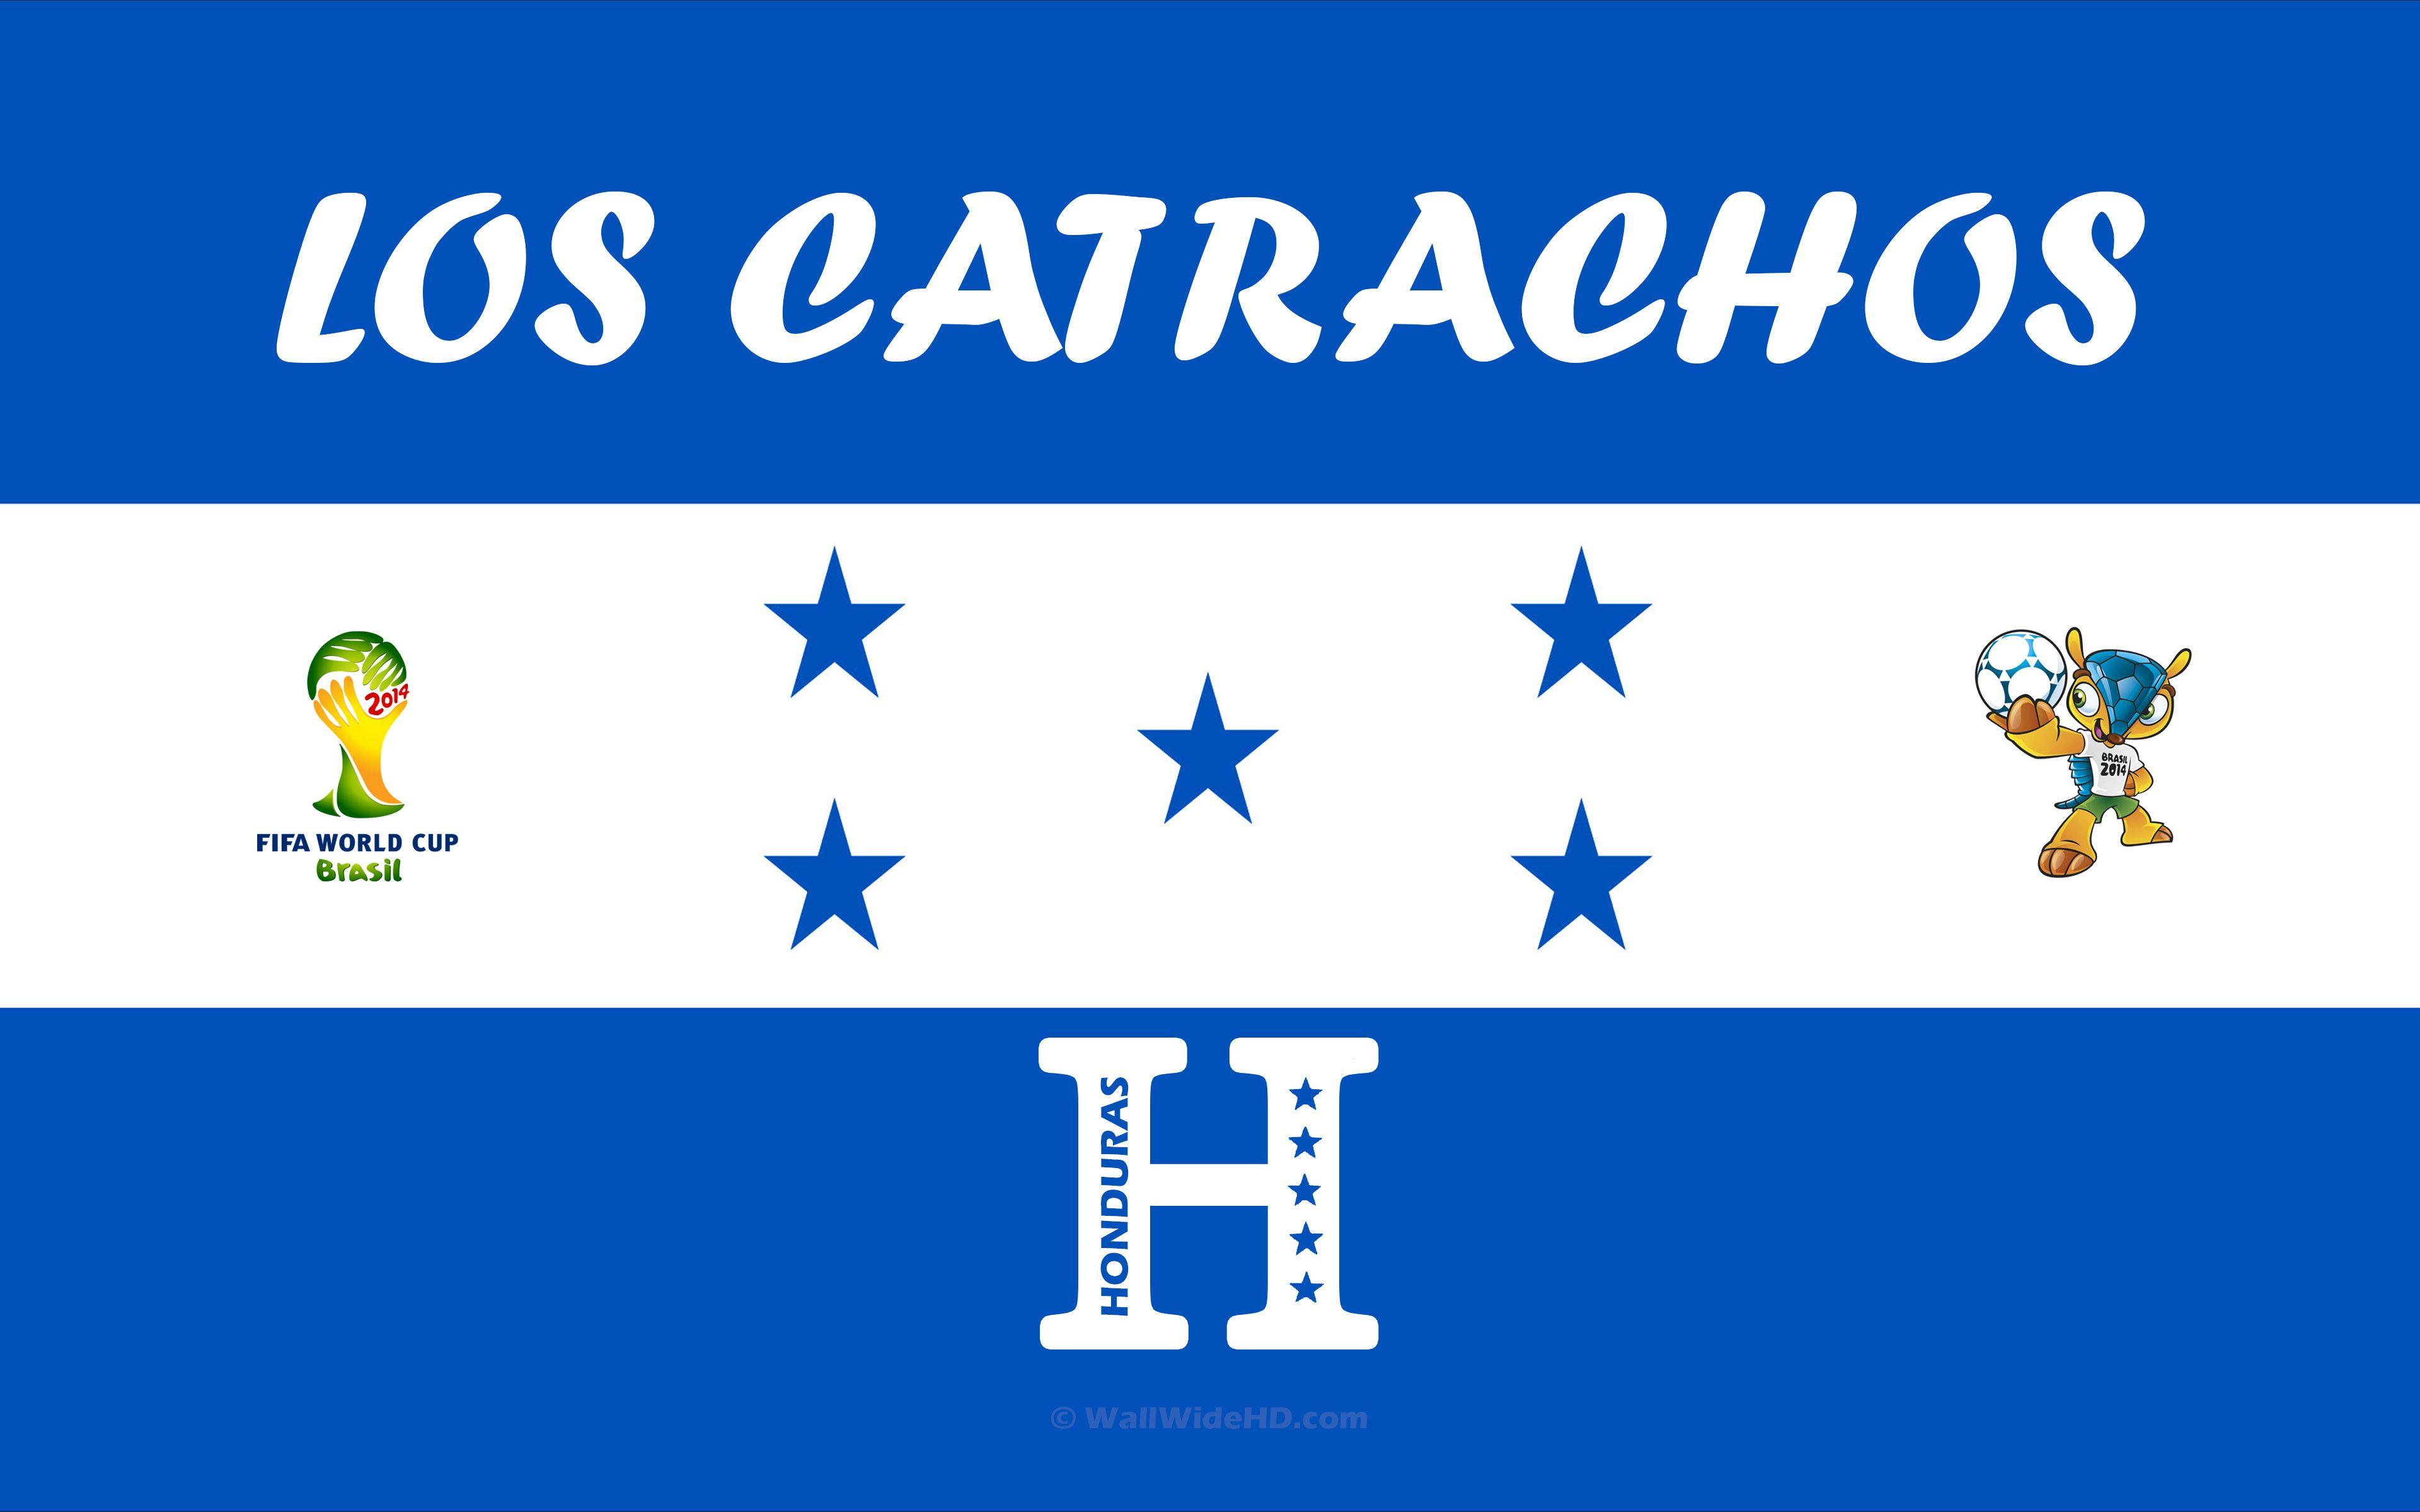 Los Catrachos 2014 Honduras Football Crest Logo World Cup